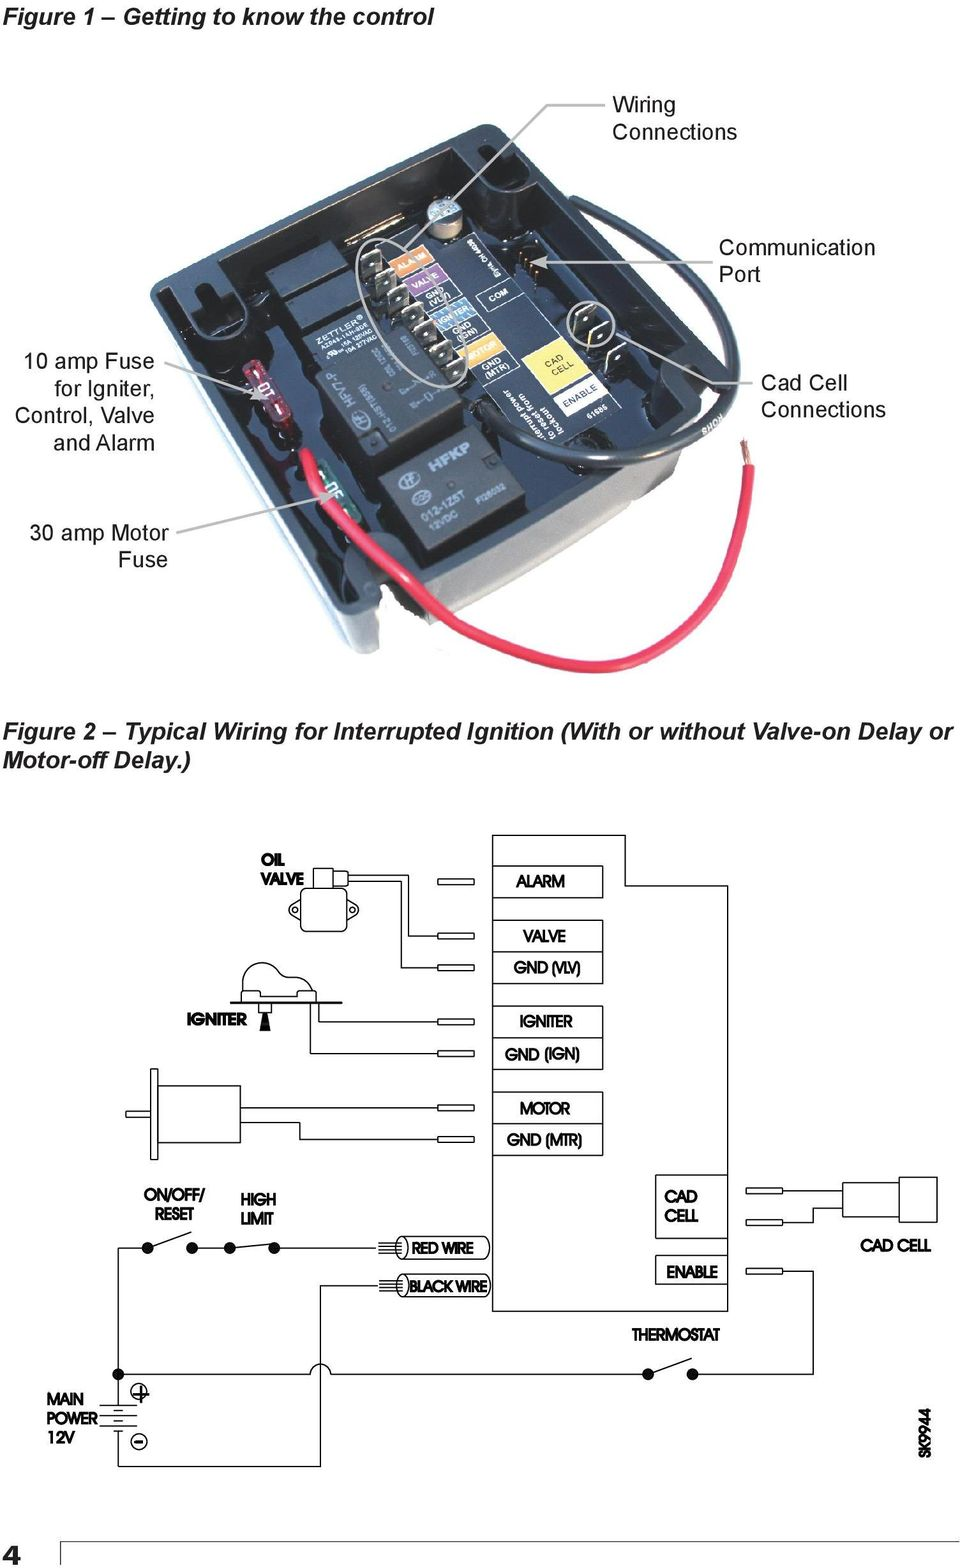 Genisys 12v Model Description Applications Advanced 12 Vdc Circuit And Wiring Diagram For Dual Fire Capacitor Discharge Ignition Cdi System From Ems Without Valve On Delay Or Motor Off